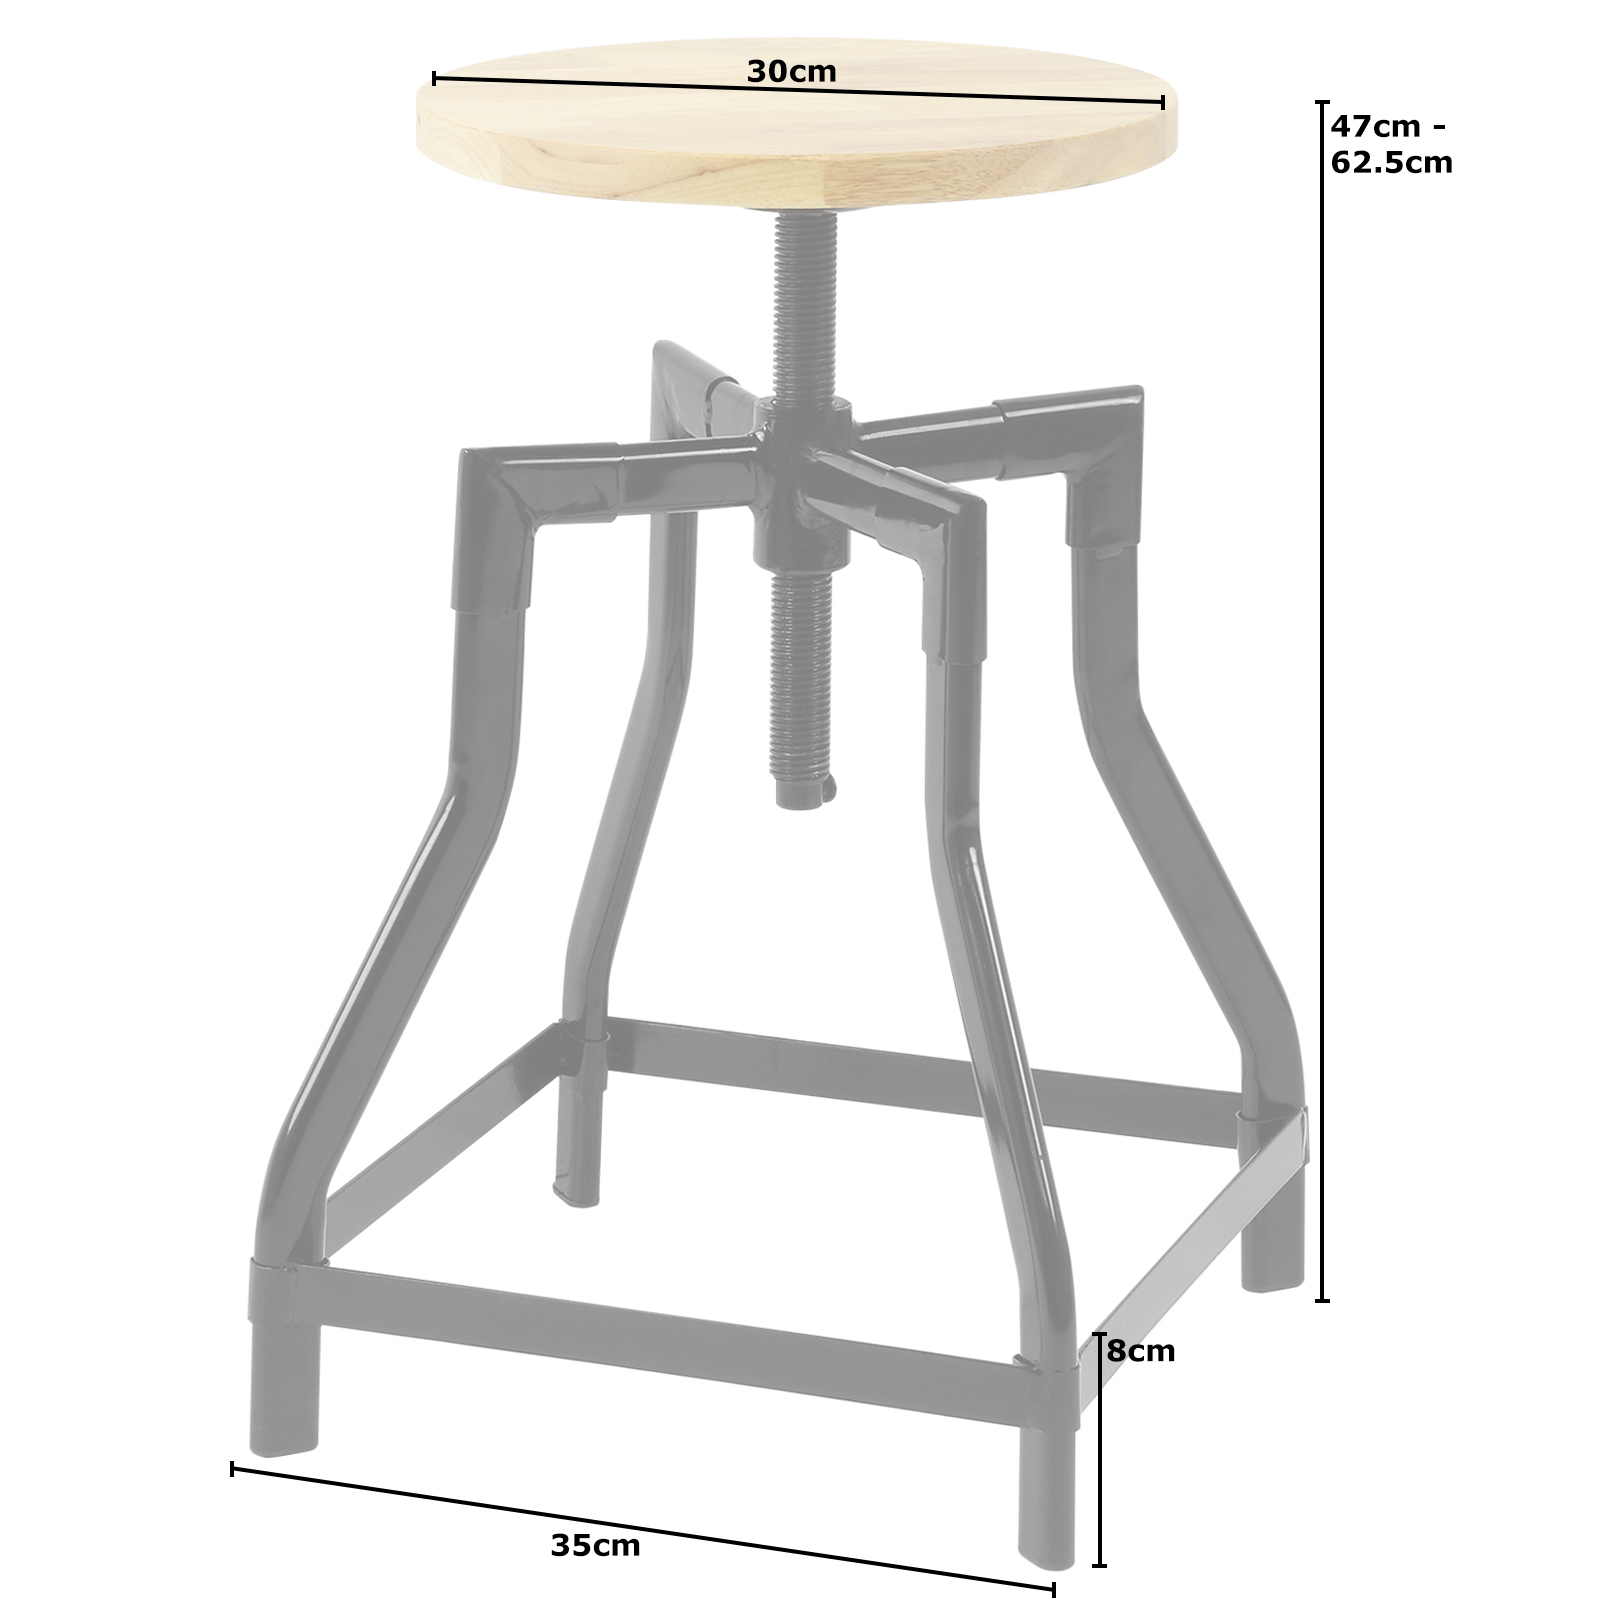 Hartleys low retro swivel screw bar table stool with height adjustable wood seat ebay - Screw top bar stools ...